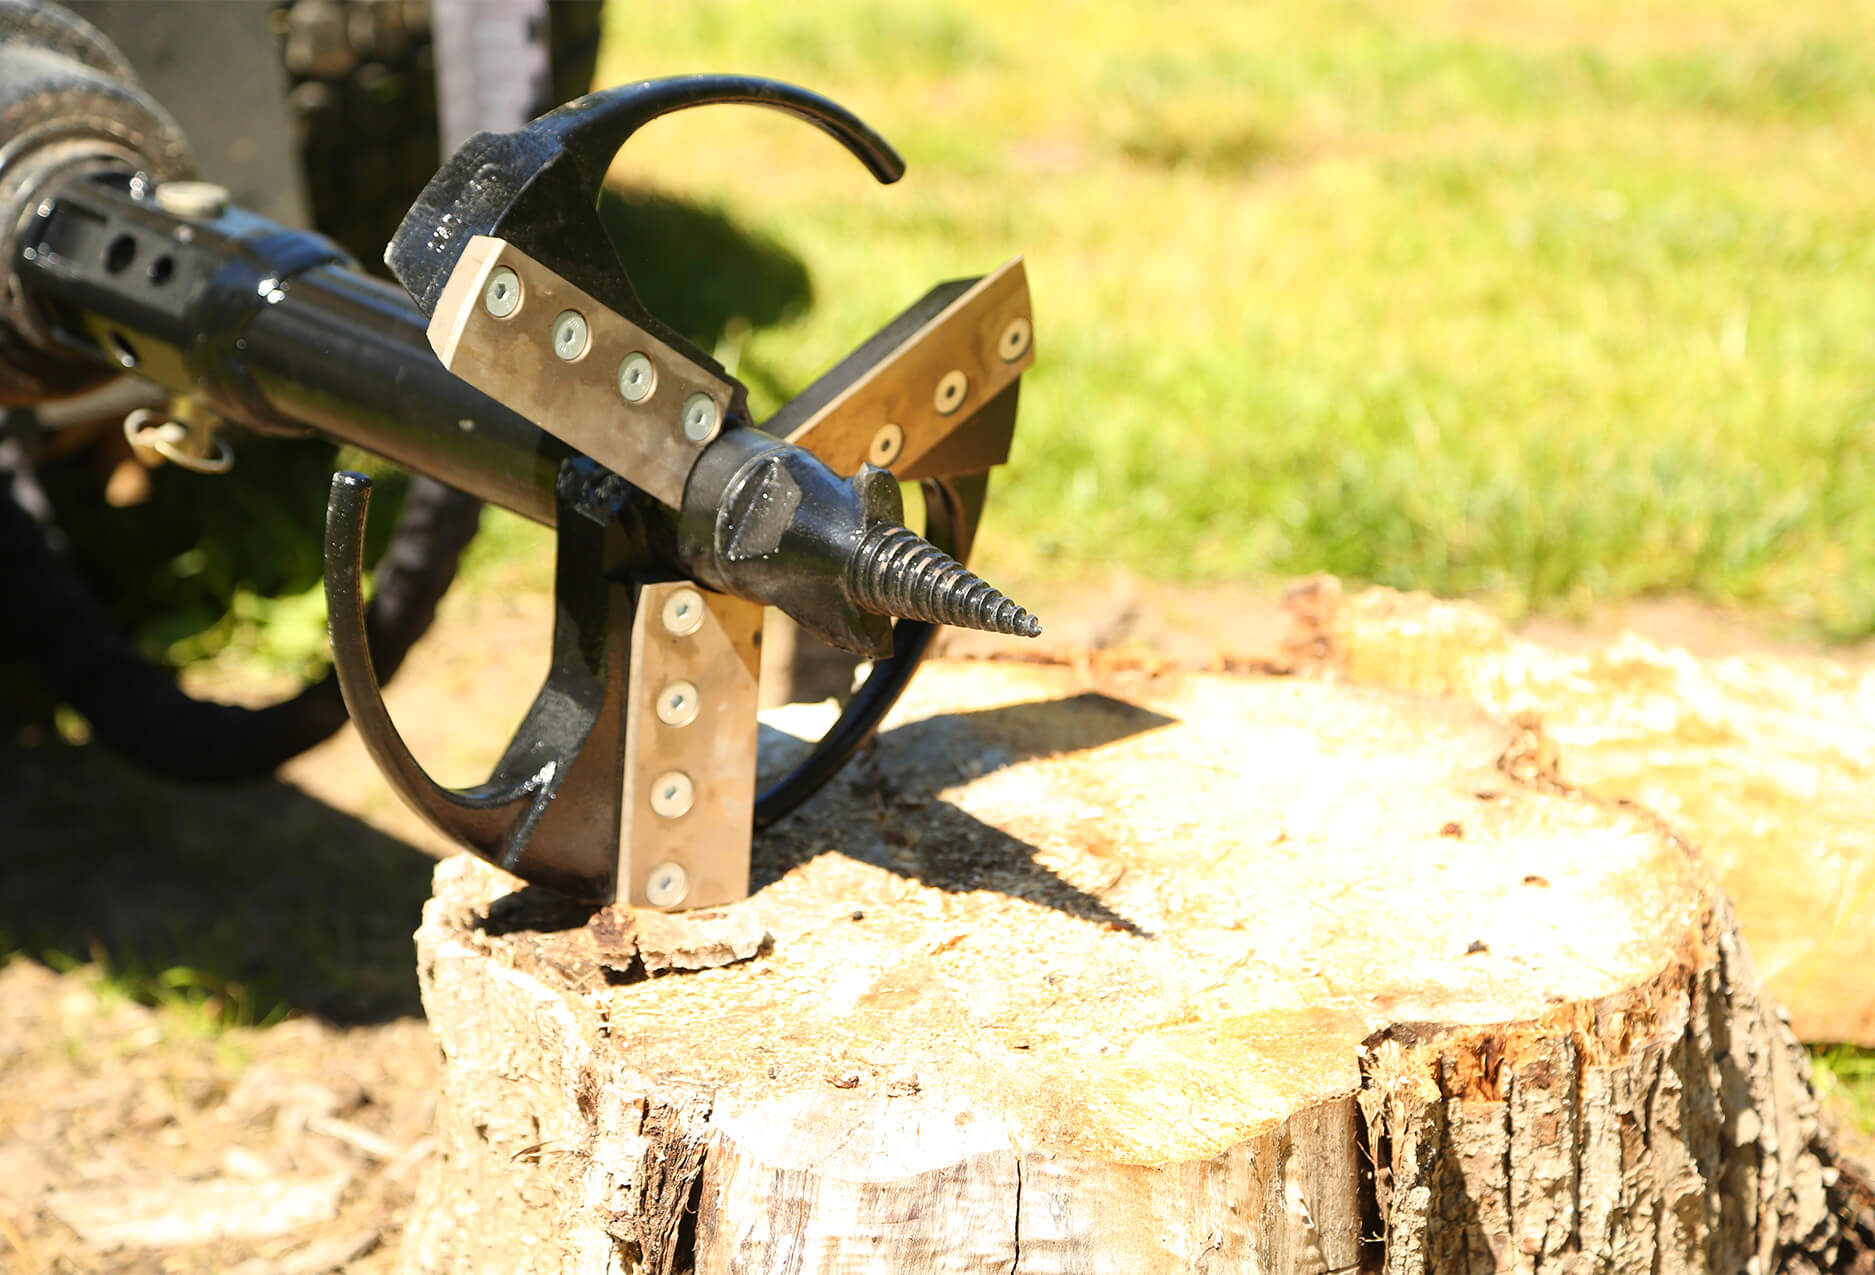 auger stump planer connect to a skid steer auger drive.